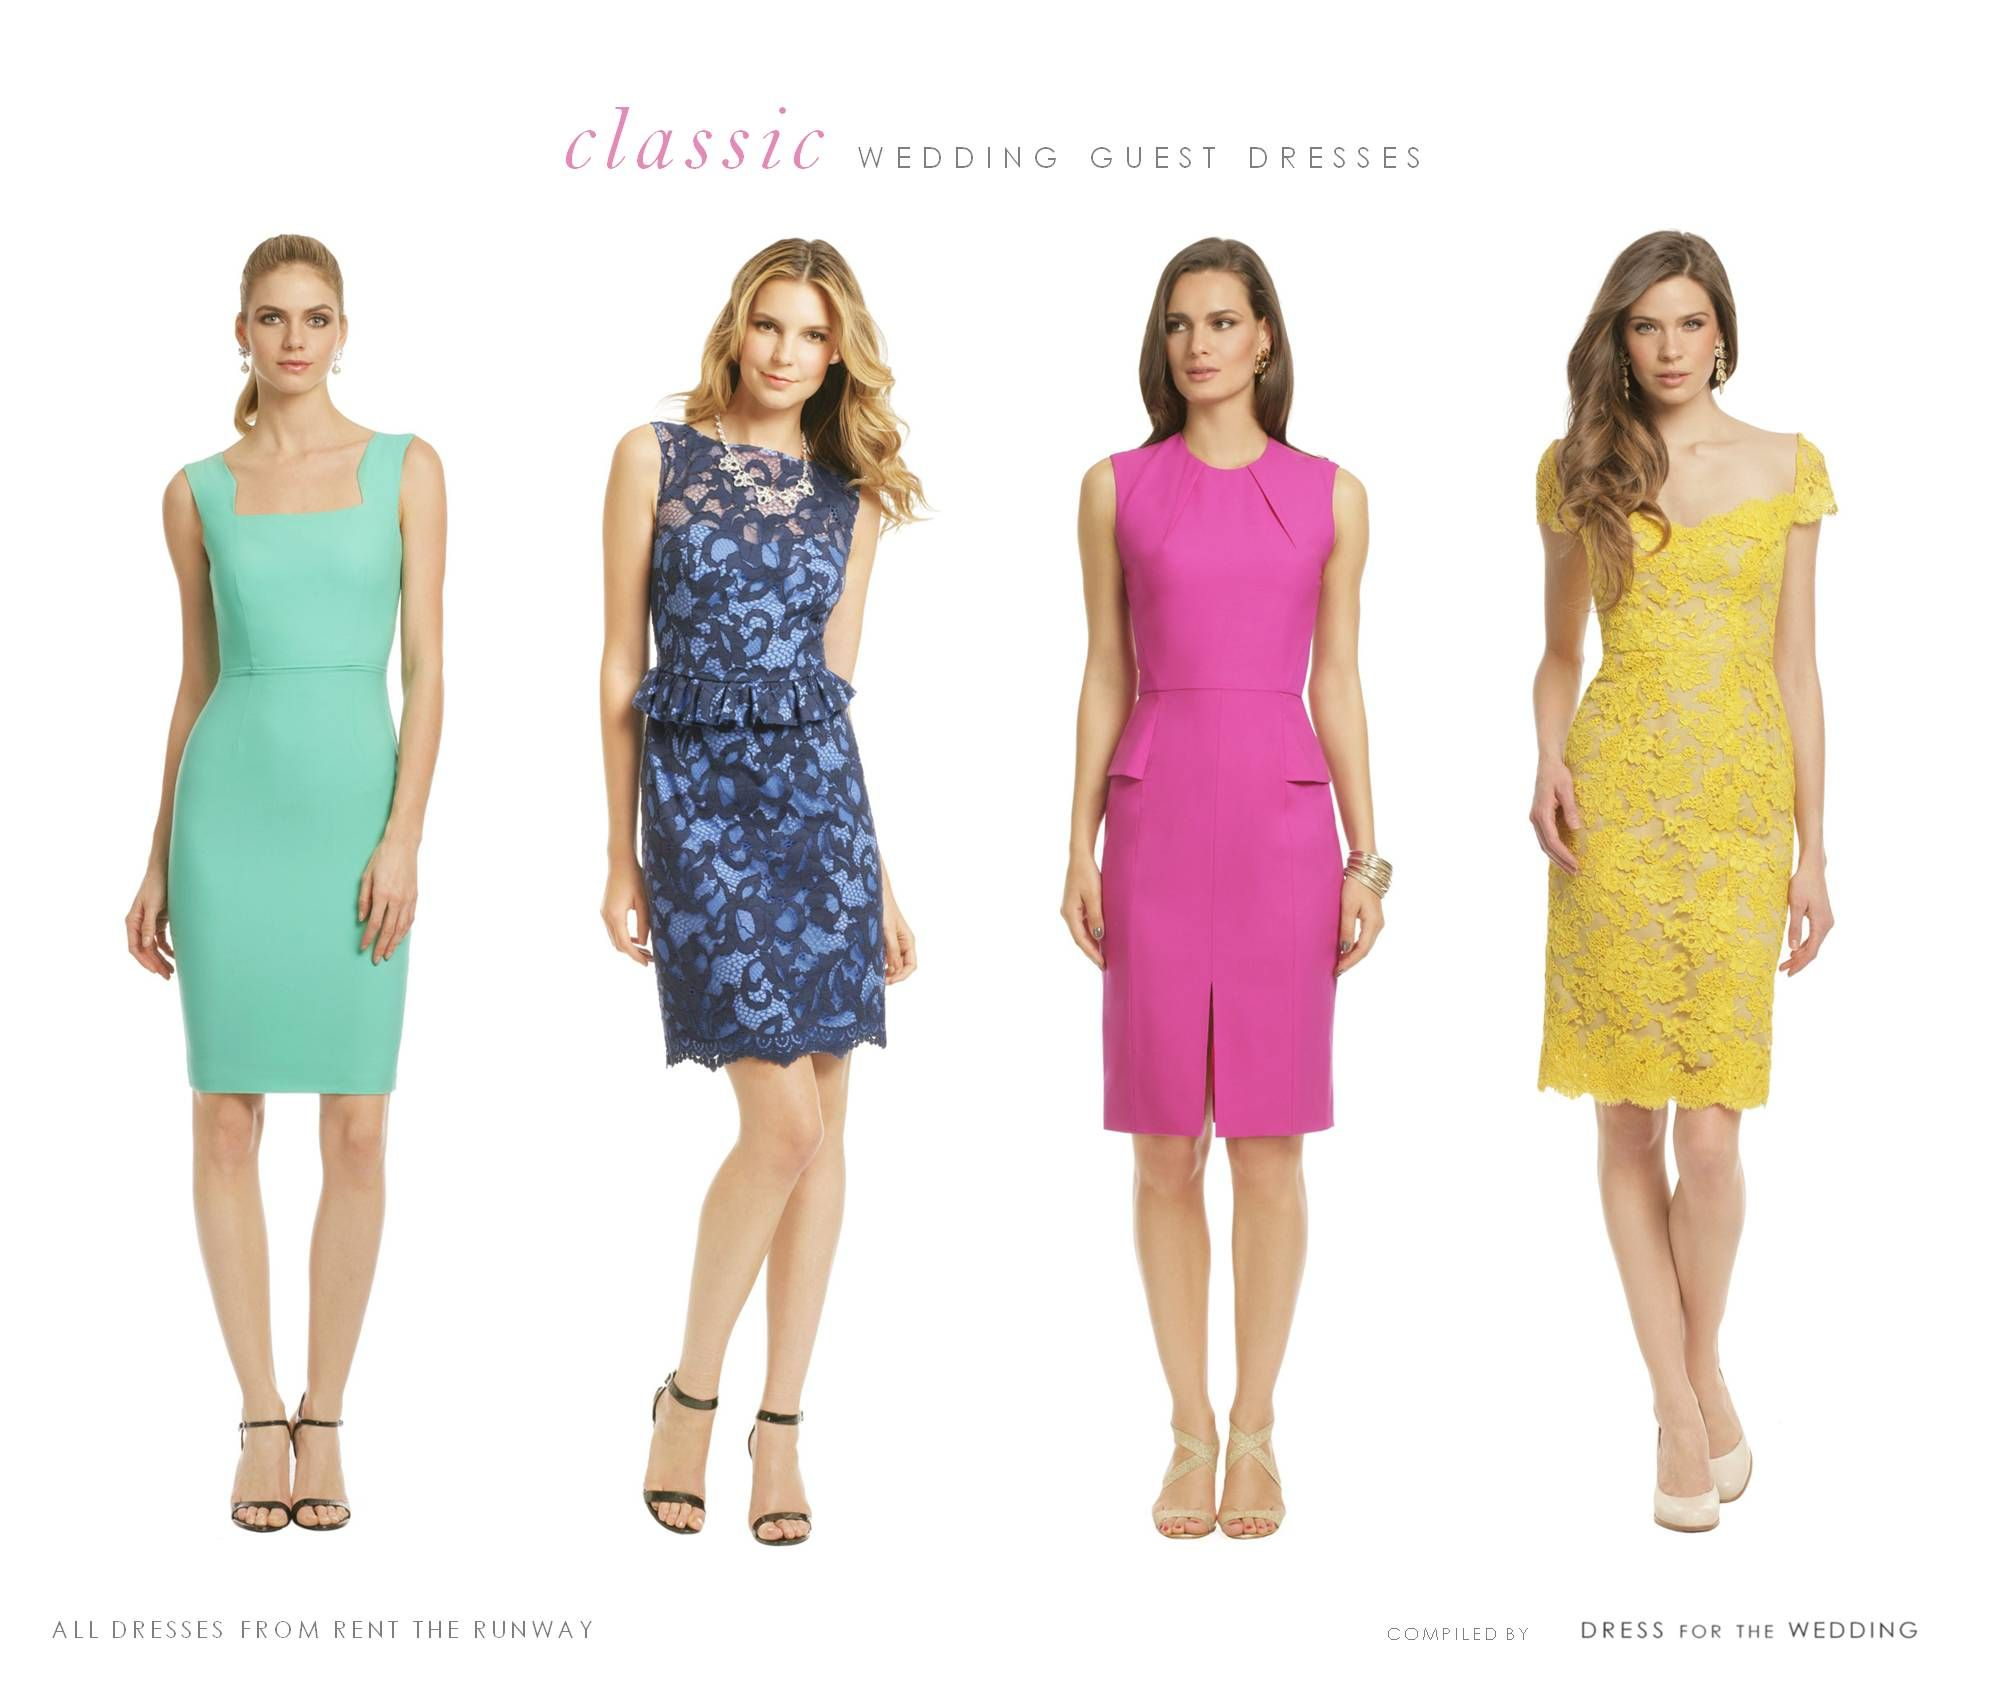 Summer Wedding Guest Dresses For A Collection Of Weddings That Can Be Ed To Worn Daytime Where Tail